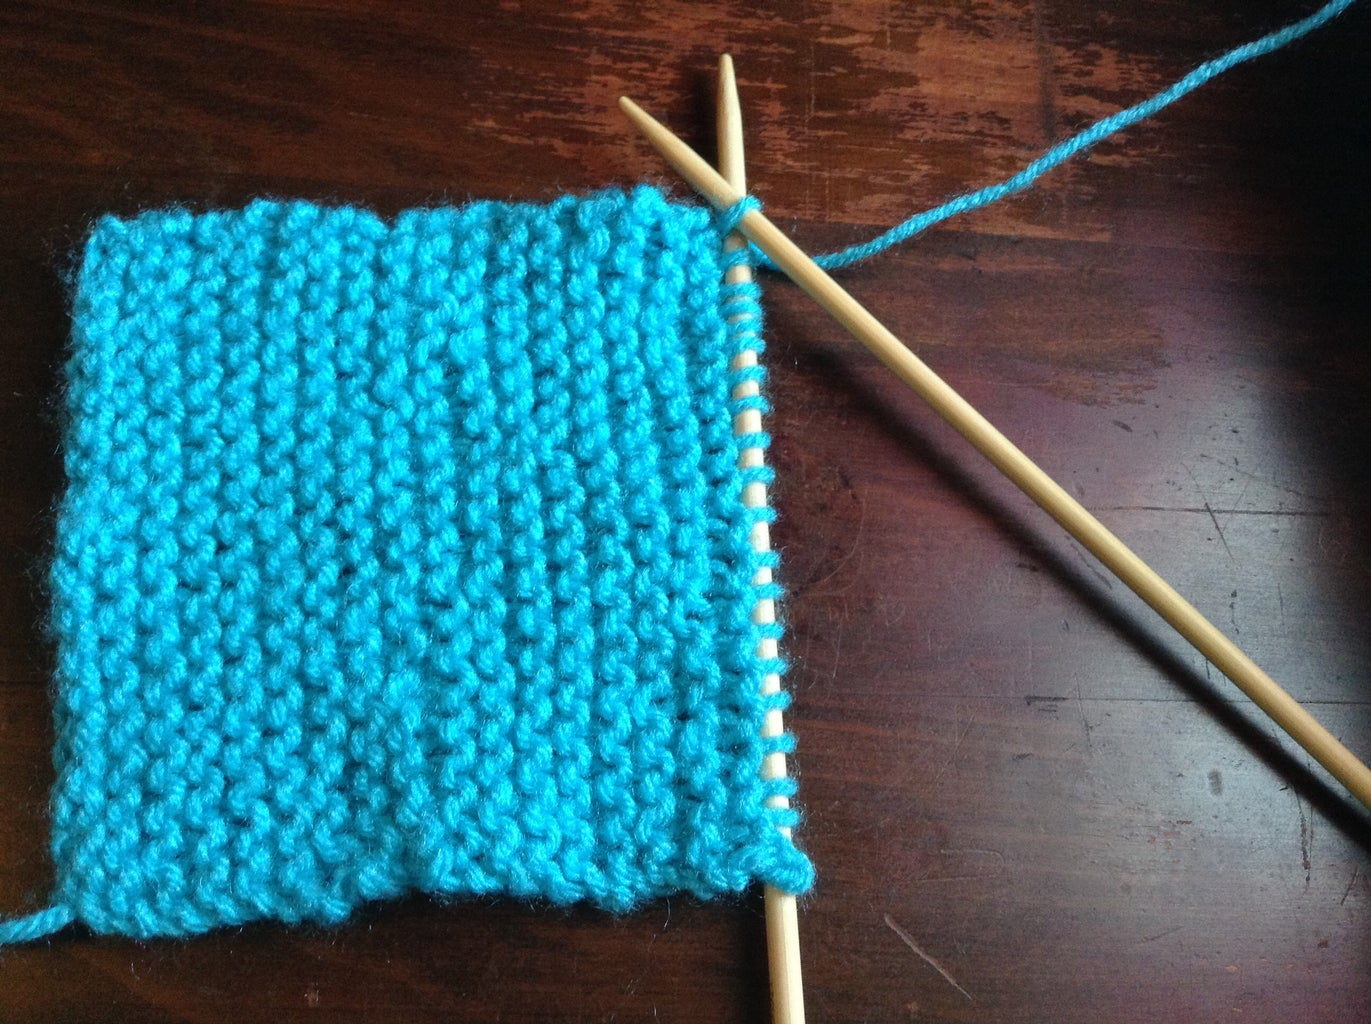 Making the Knit Rows